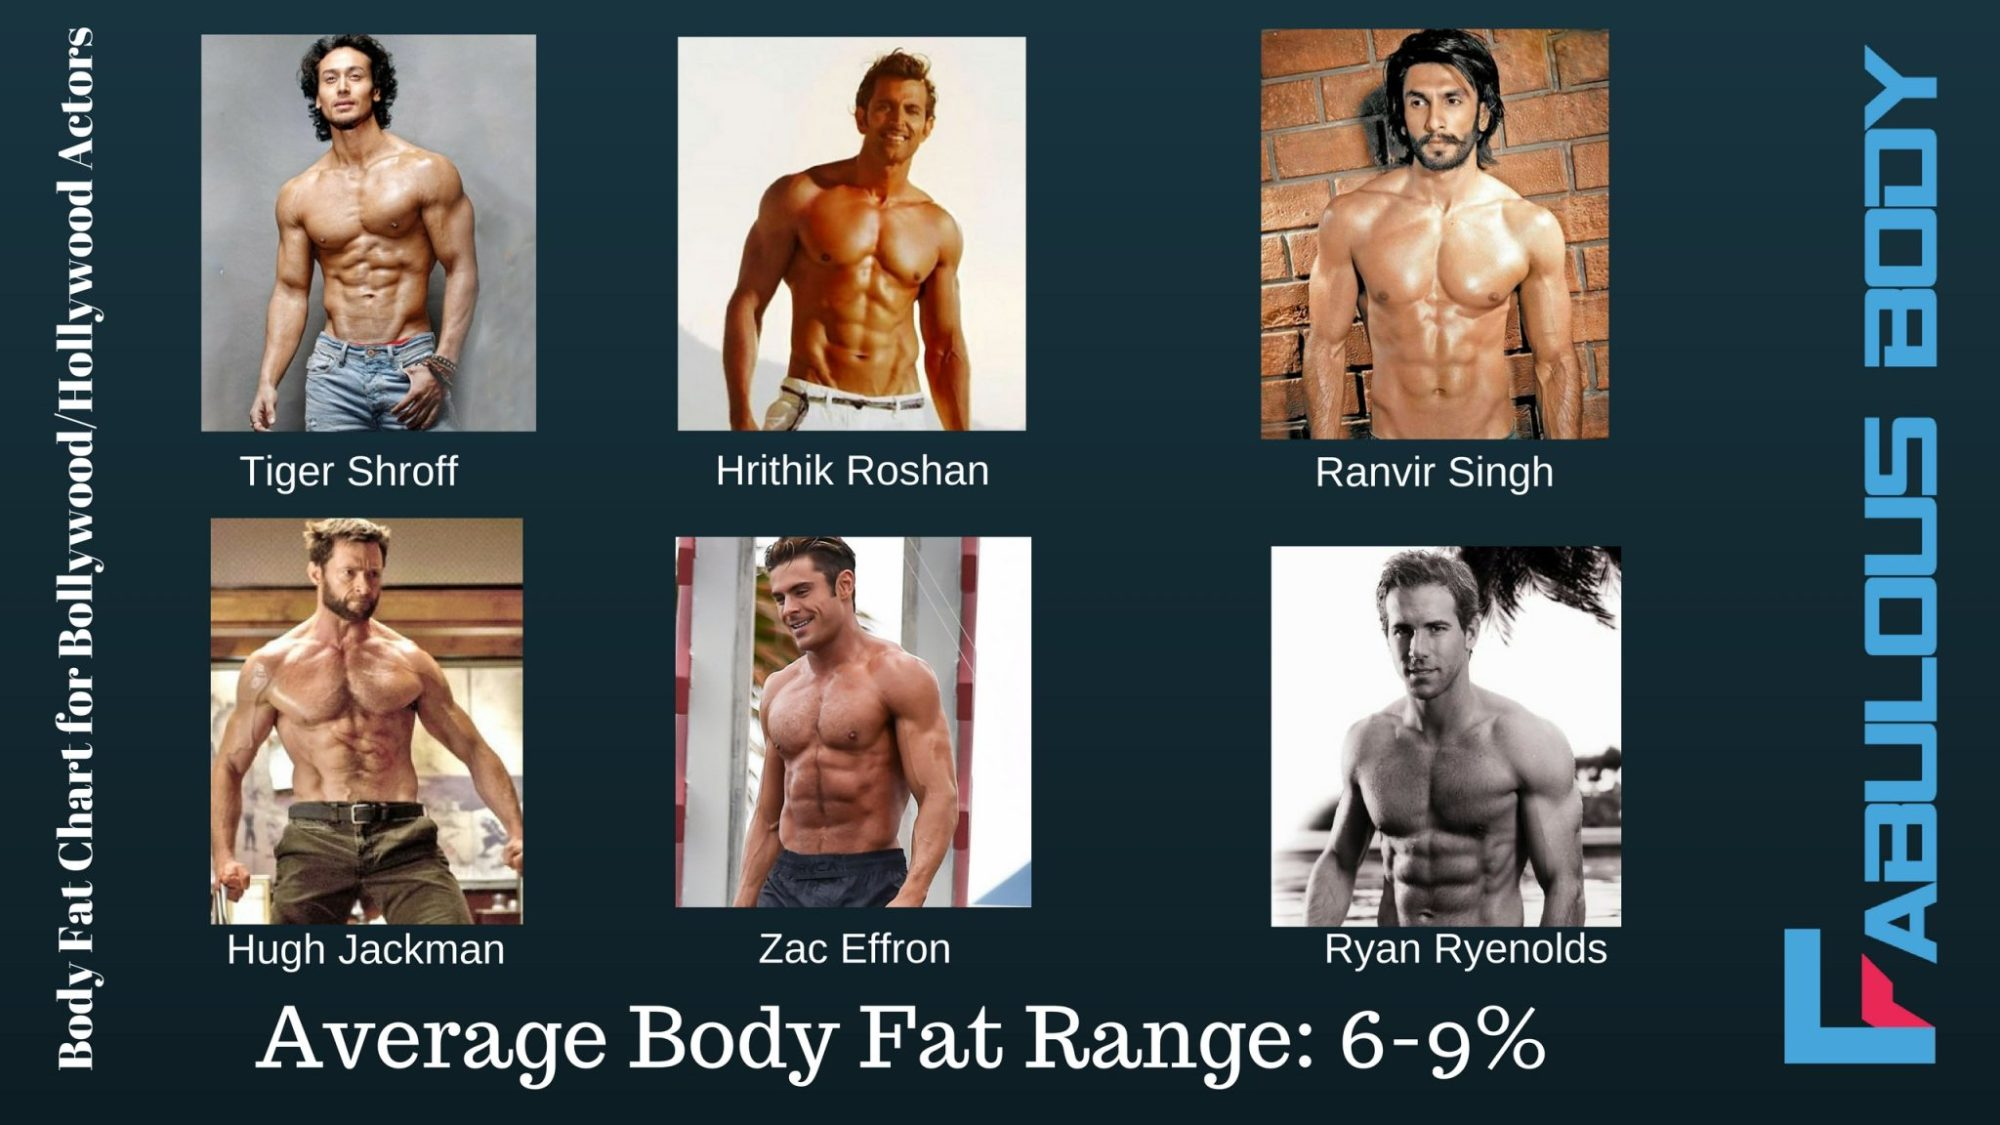 hight resolution of here is a body fat percentage chart for actors